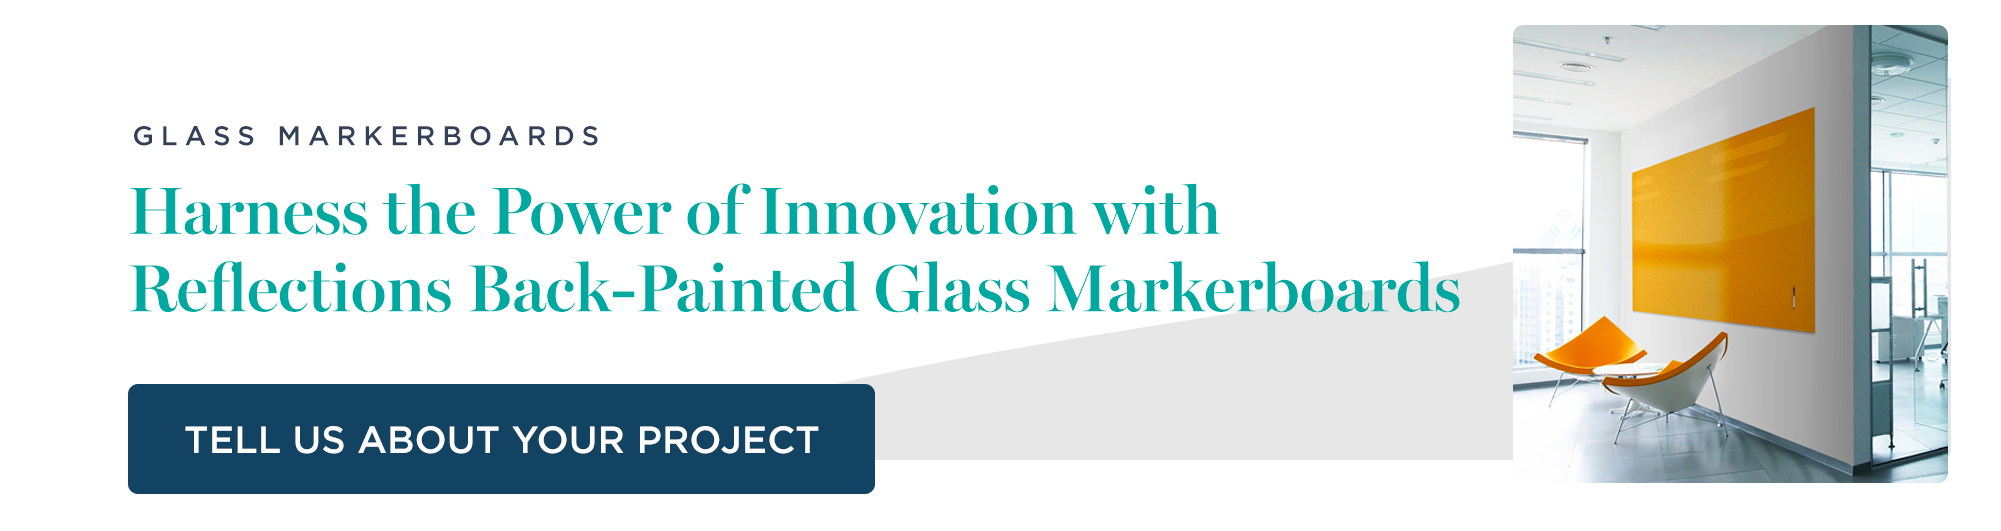 Glass Markerboards CTA with text - Harness the Power of Innovation with Reflections Back-Painted Glass Markerboards - and button - Tell us about your project